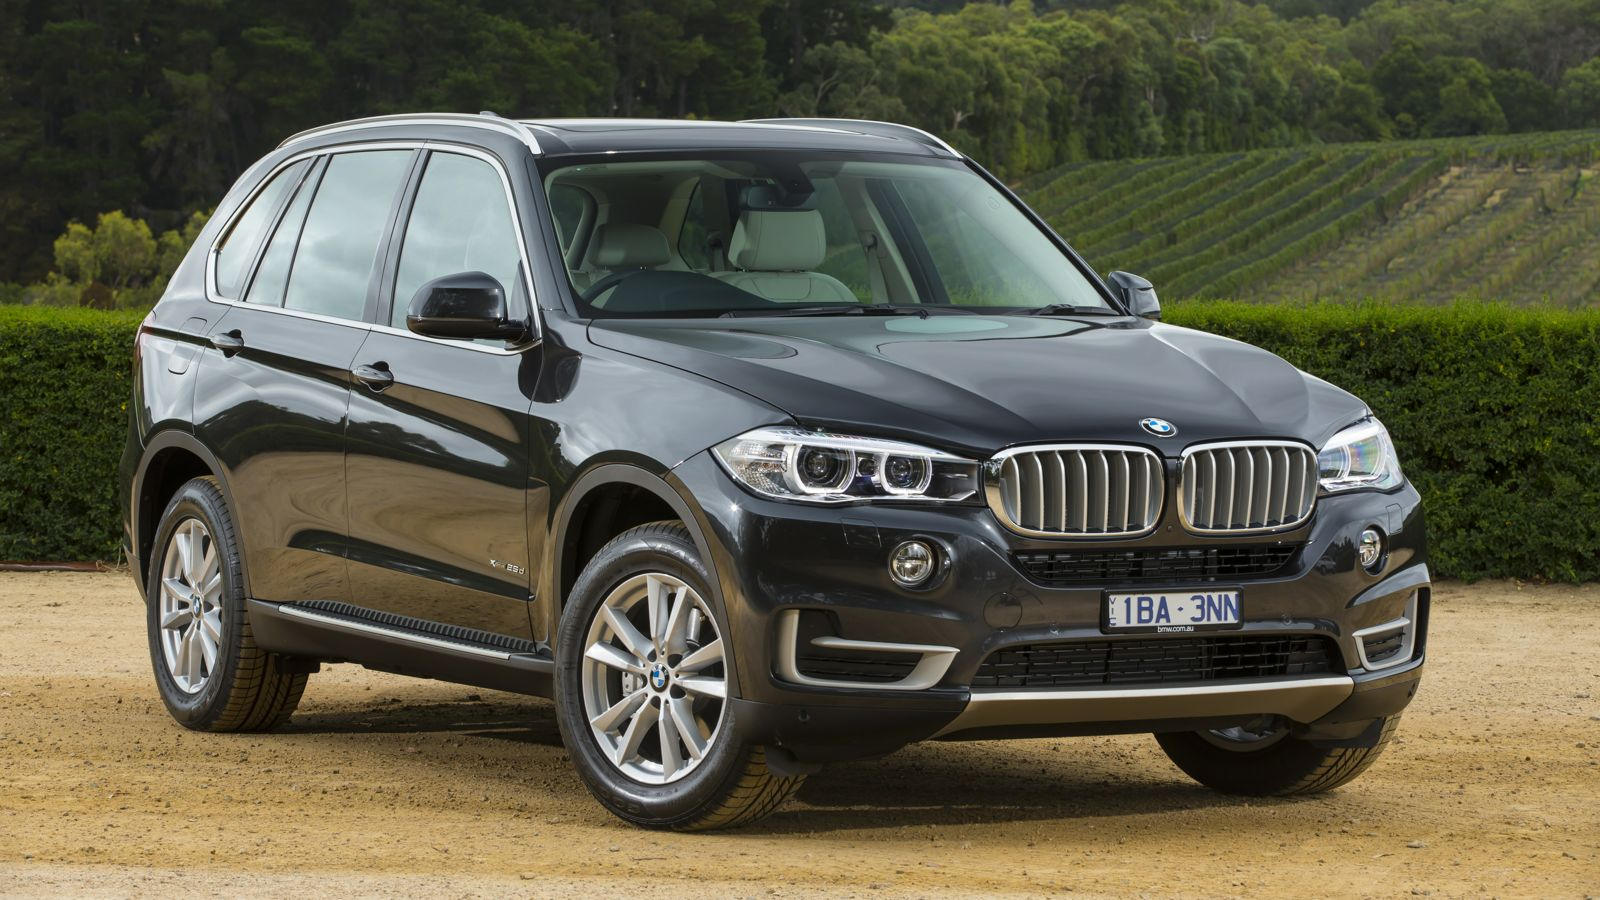 bmw x5 review xdrive25d and sdrive25d photos caradvice. Black Bedroom Furniture Sets. Home Design Ideas